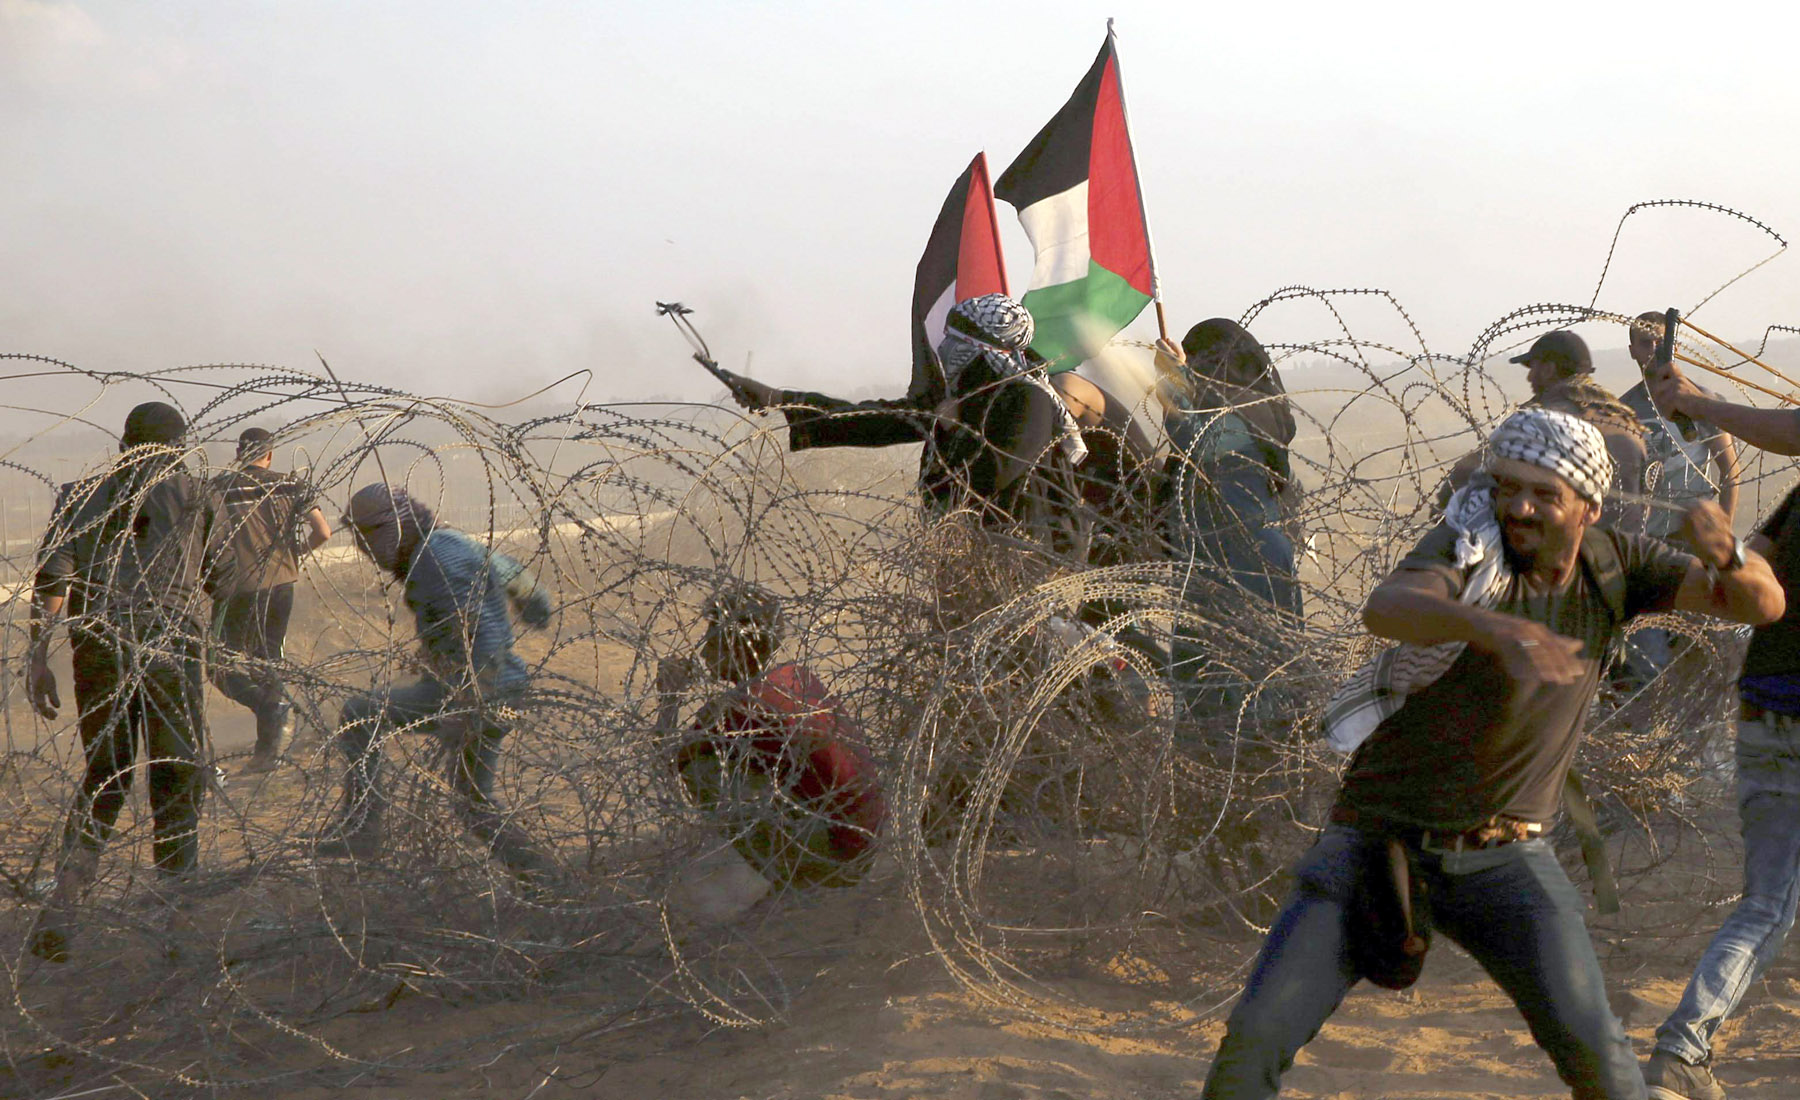 A protester uses a slingshot to hurl stones while others throw stones near the fence of the Gaza Strip border with Israel, on October 12.              (AP)